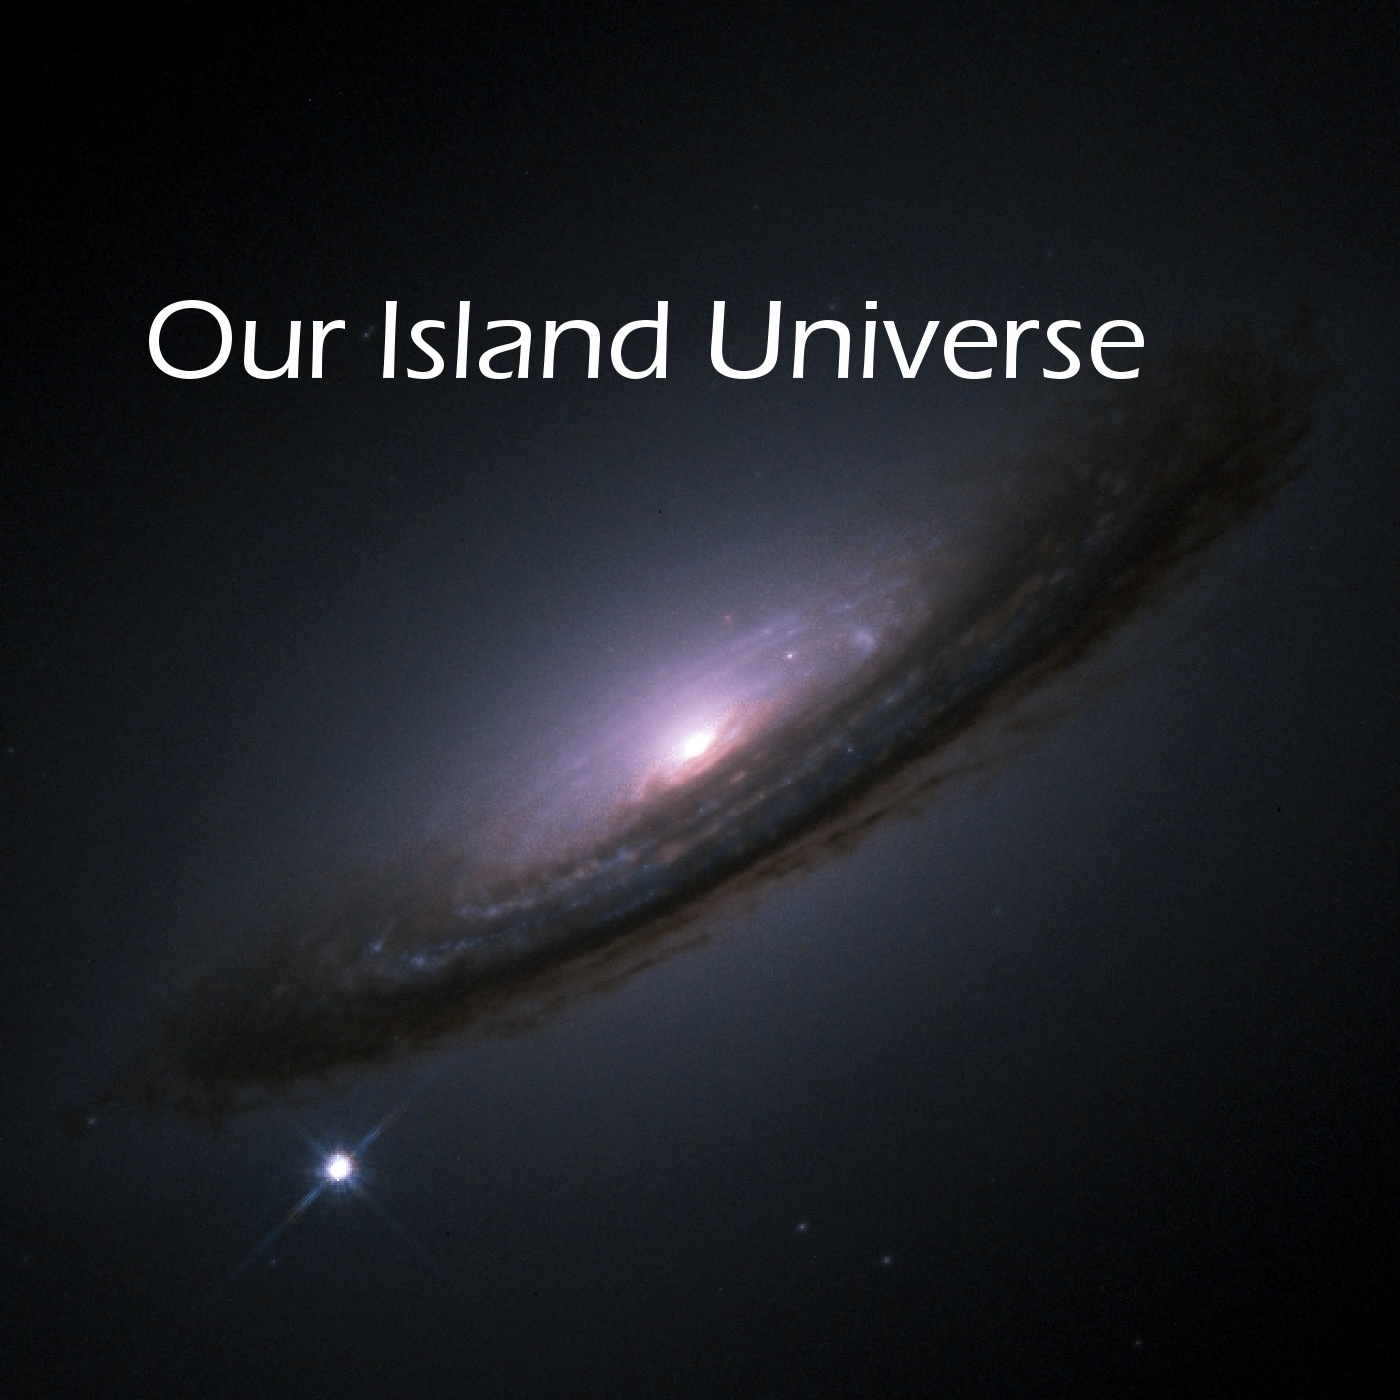 Our Island Universe